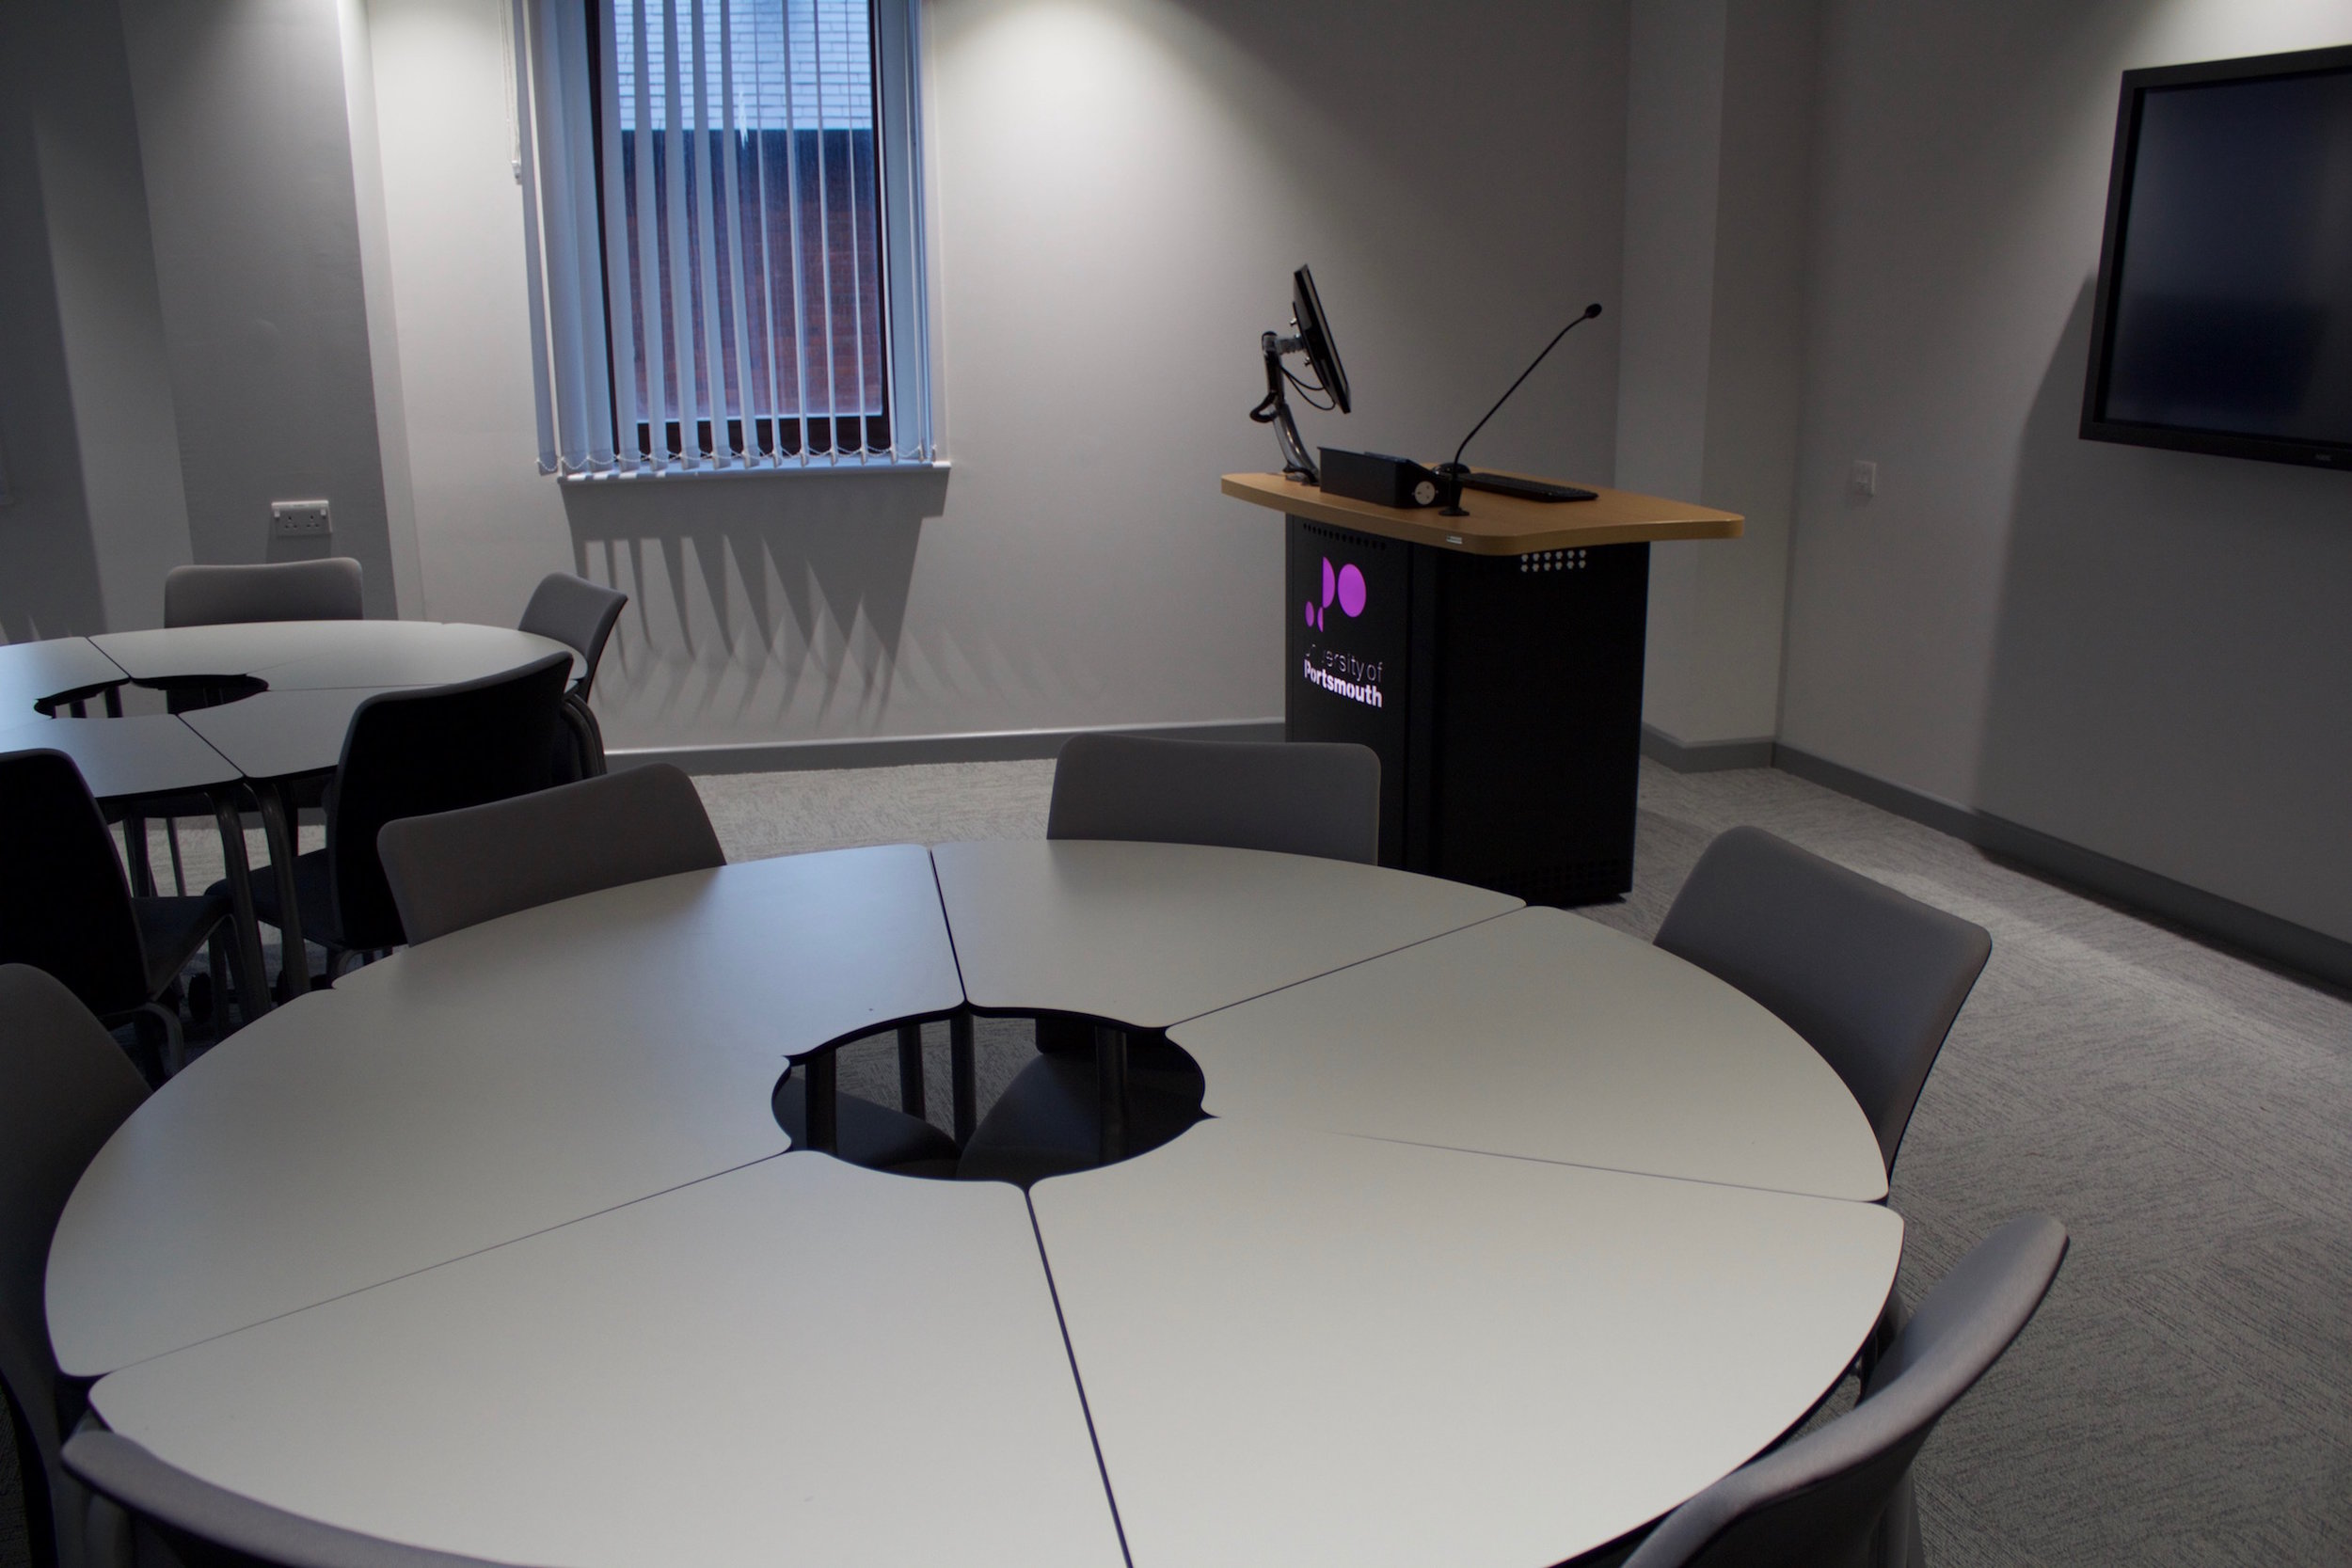 university of portsmouth business simulation suite 12.jpg